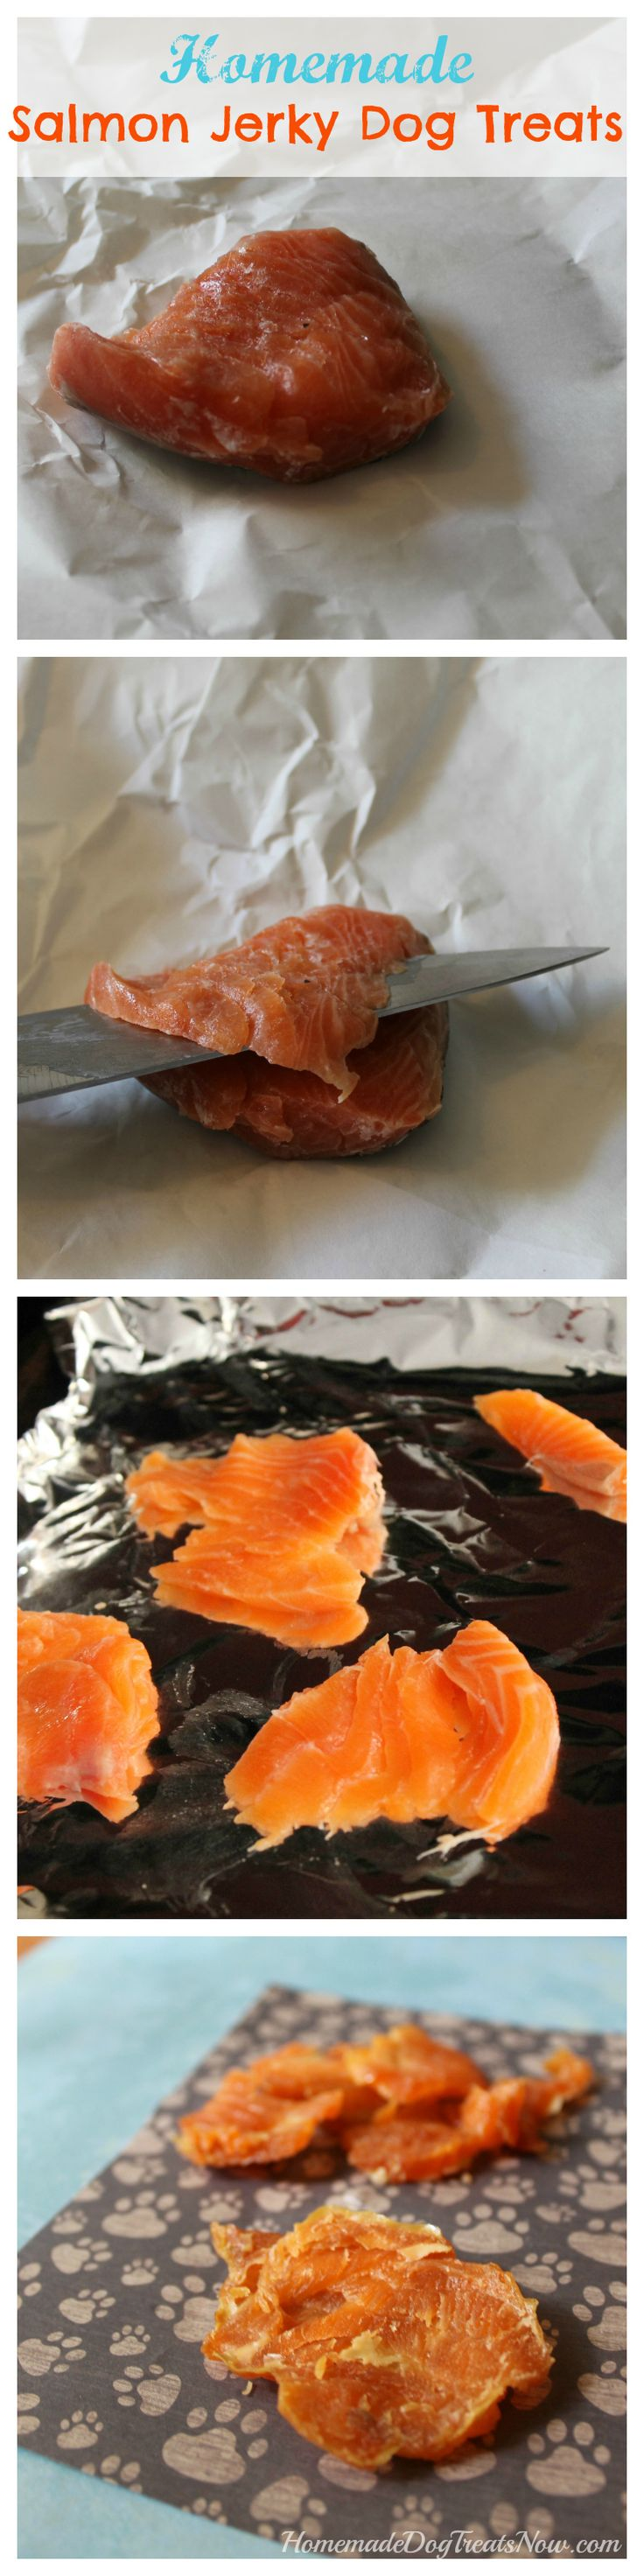 Homemade Salmon Jerky Dog Treats These Are So Easy To Make And Healthy For  Your